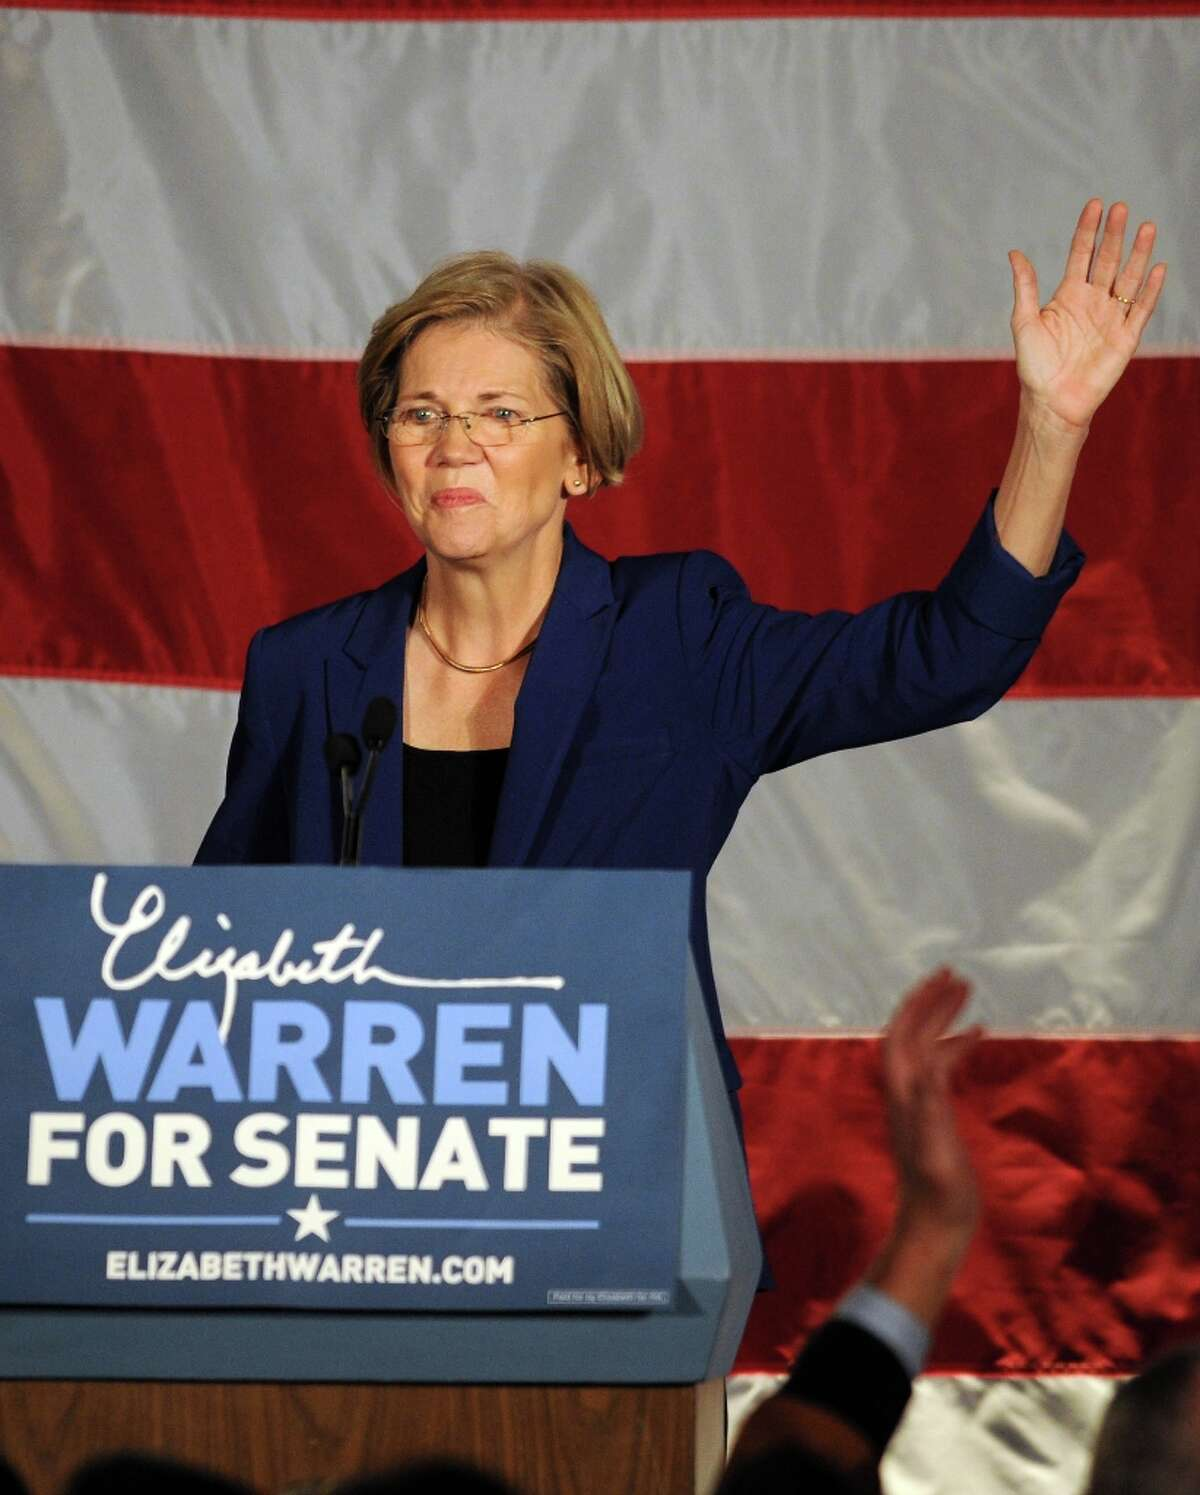 As a law professor, Elizabeth Warren rose to national prominence as a critic of Wall Street excesses that gave America the Great Recession.